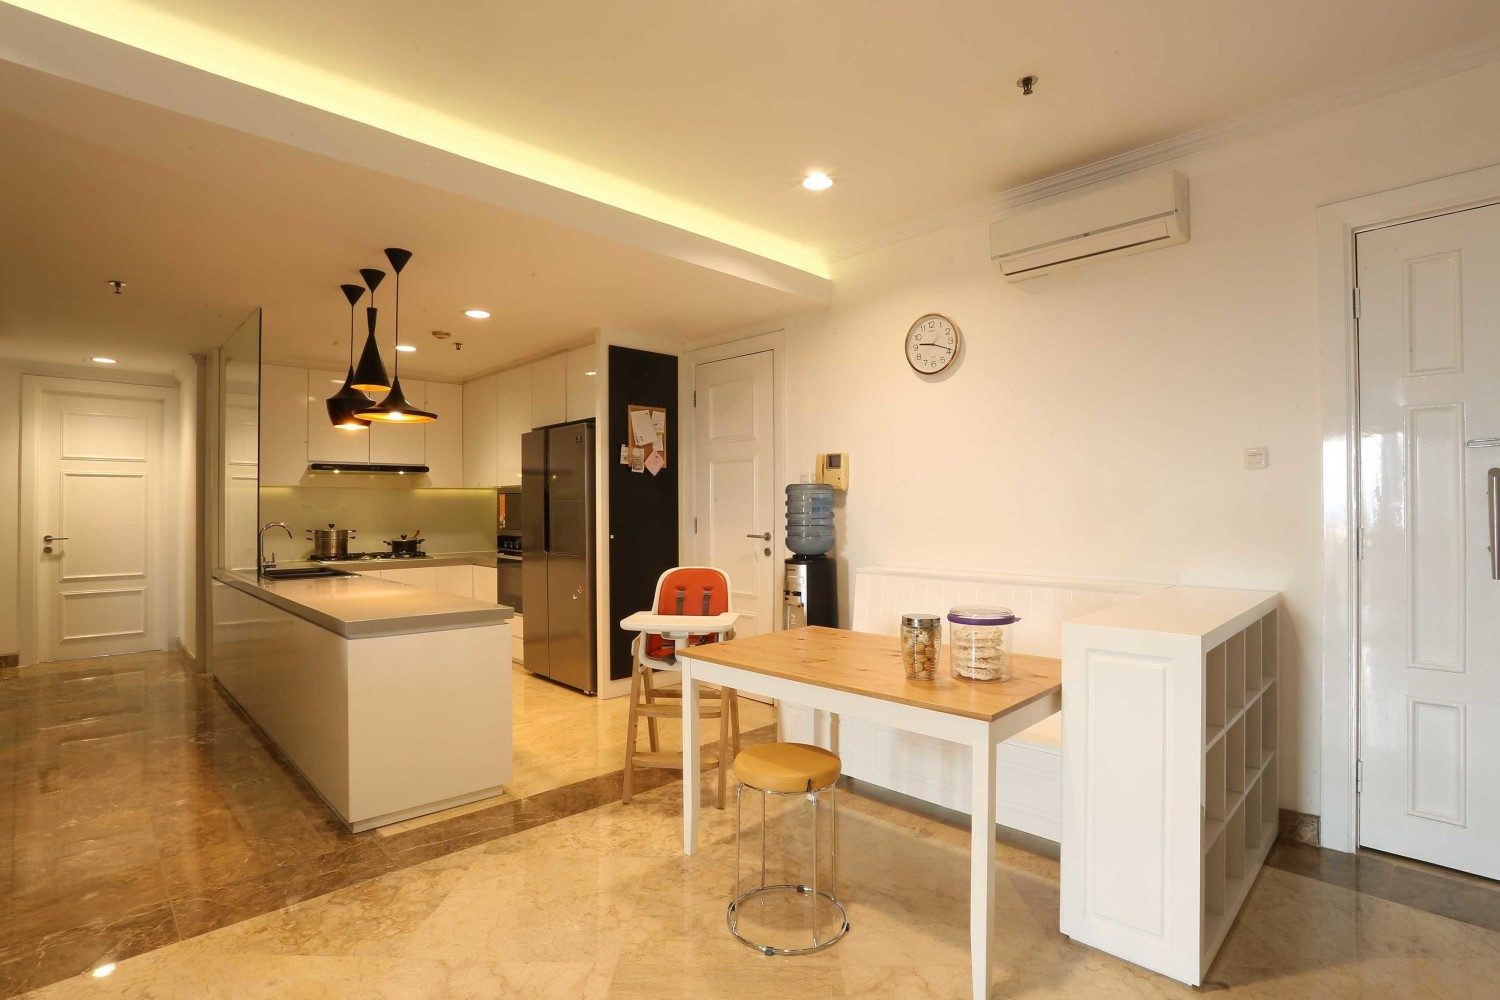 Apartment Dago Suit House Karya Inspace Studio (Sumber: arsitag.com)